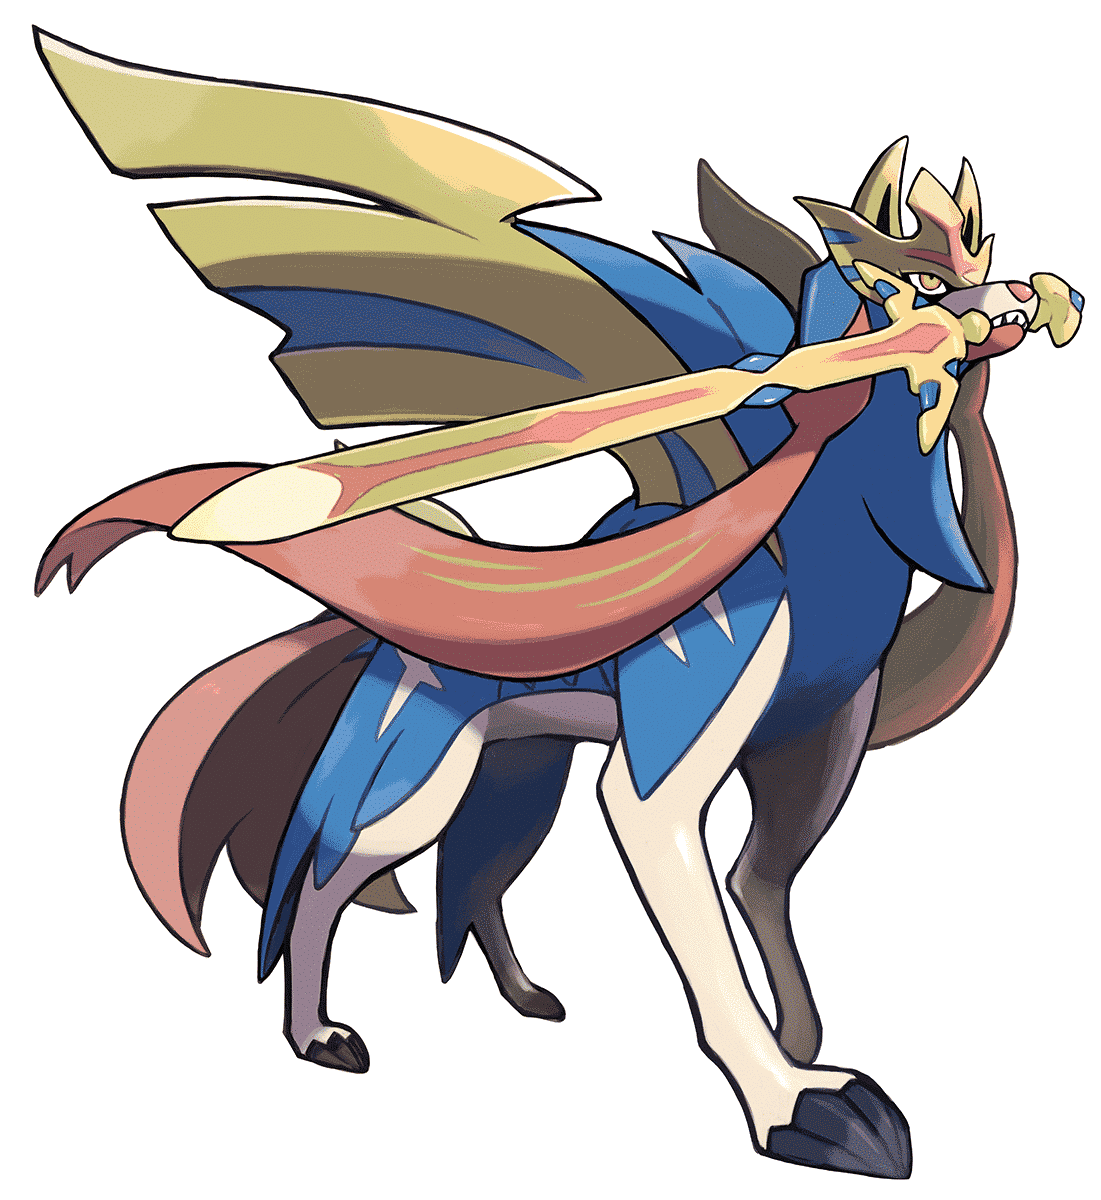 An image of Zacian